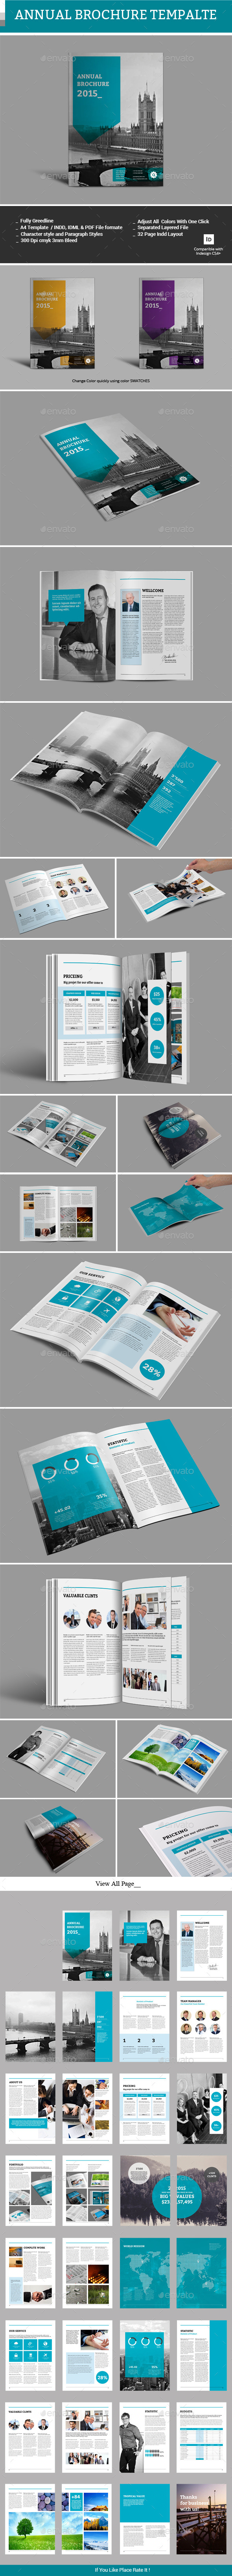 GraphicRiver Annual Brochure Template 11768231